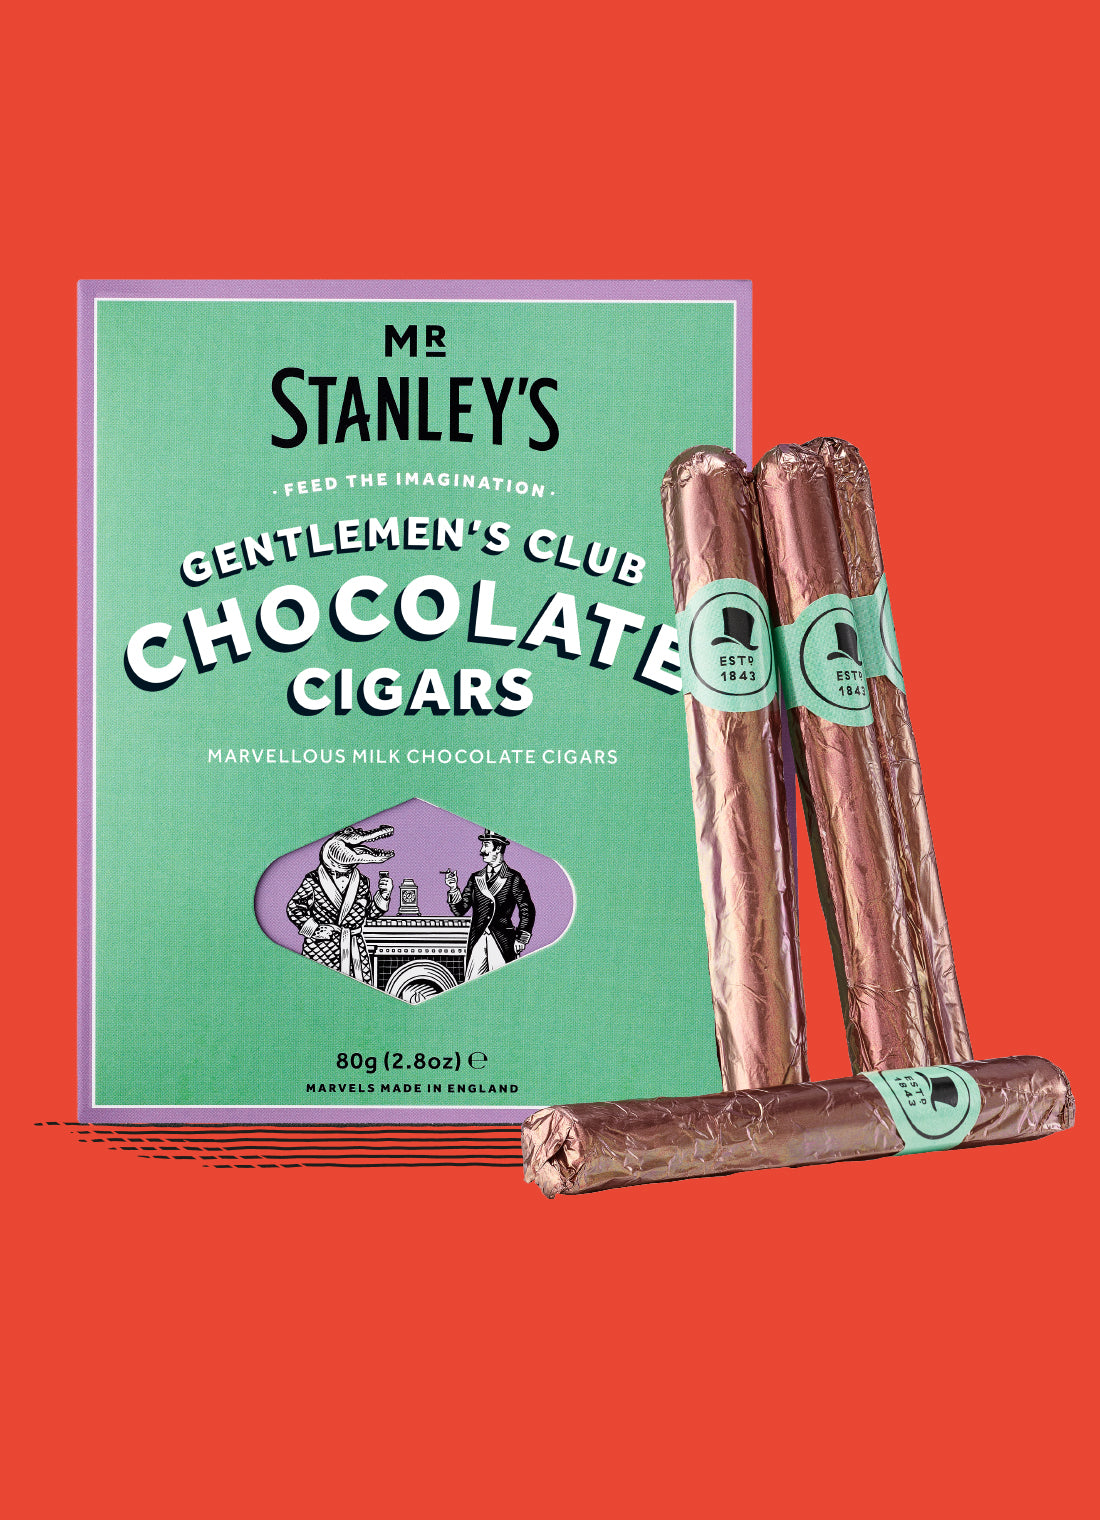 Gentlemen's Club Milk Chocolate Cigars